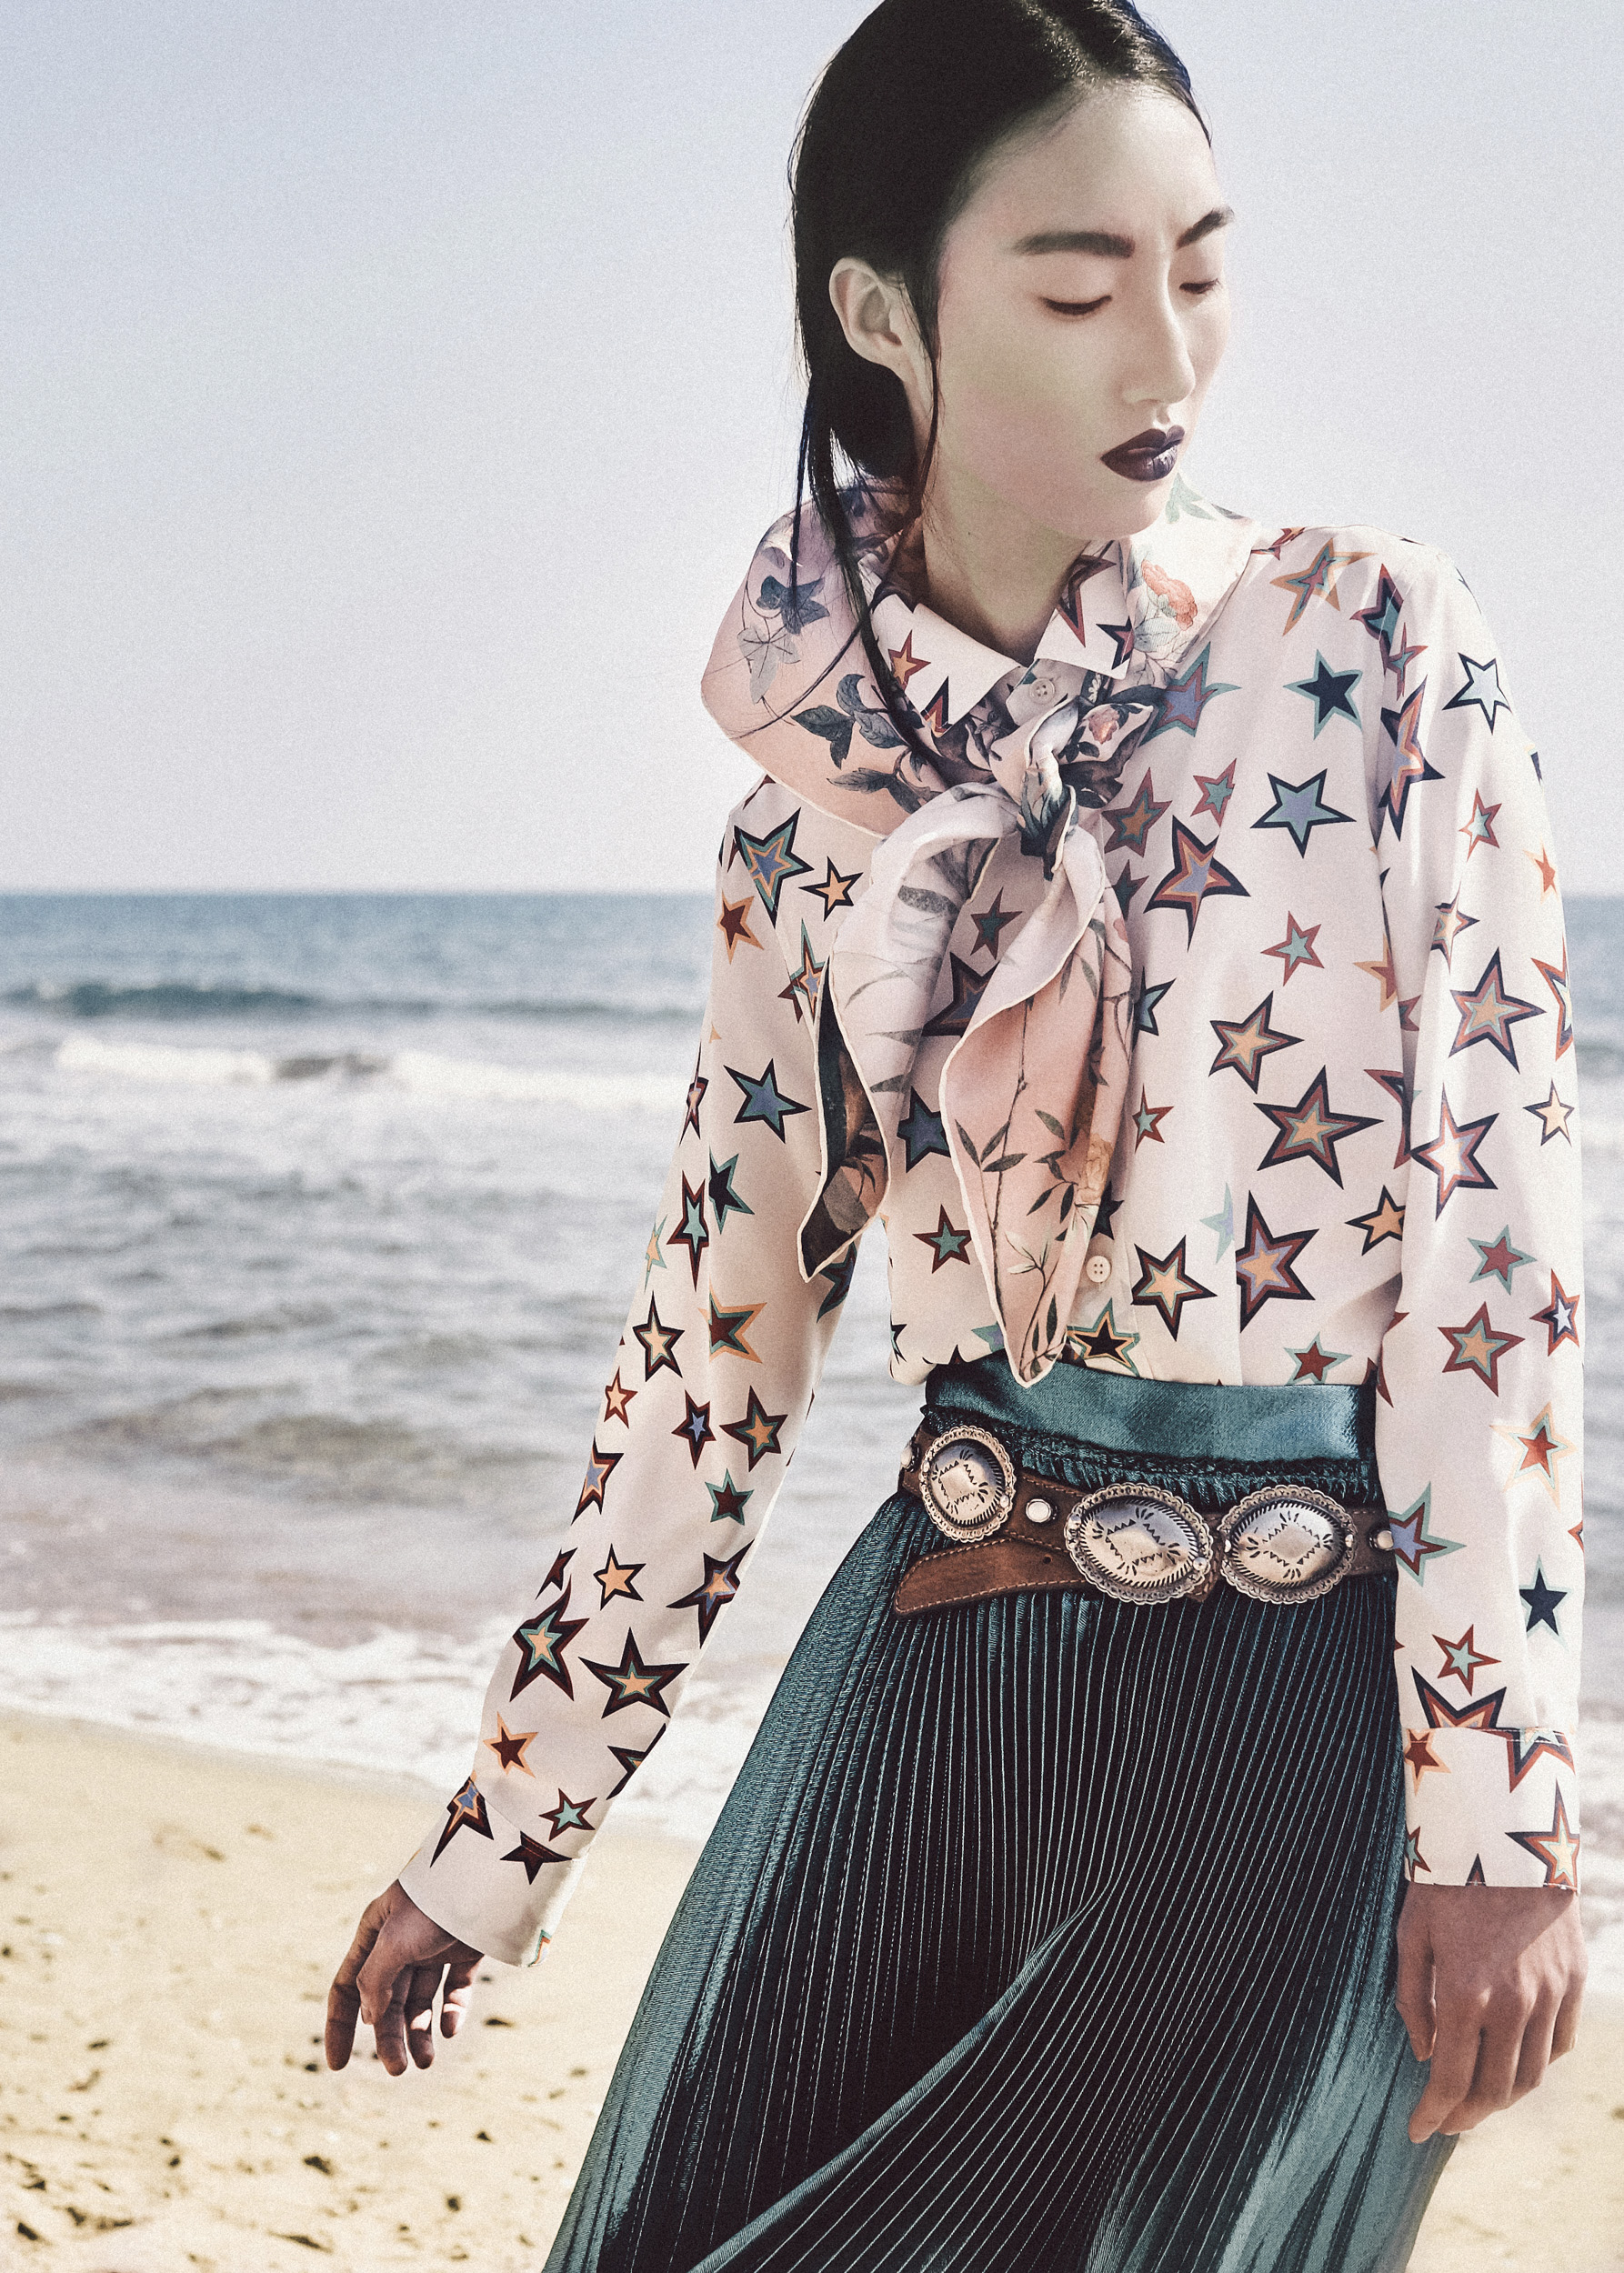 asian model at the sea photographed by gai stefano for a fashion editorial